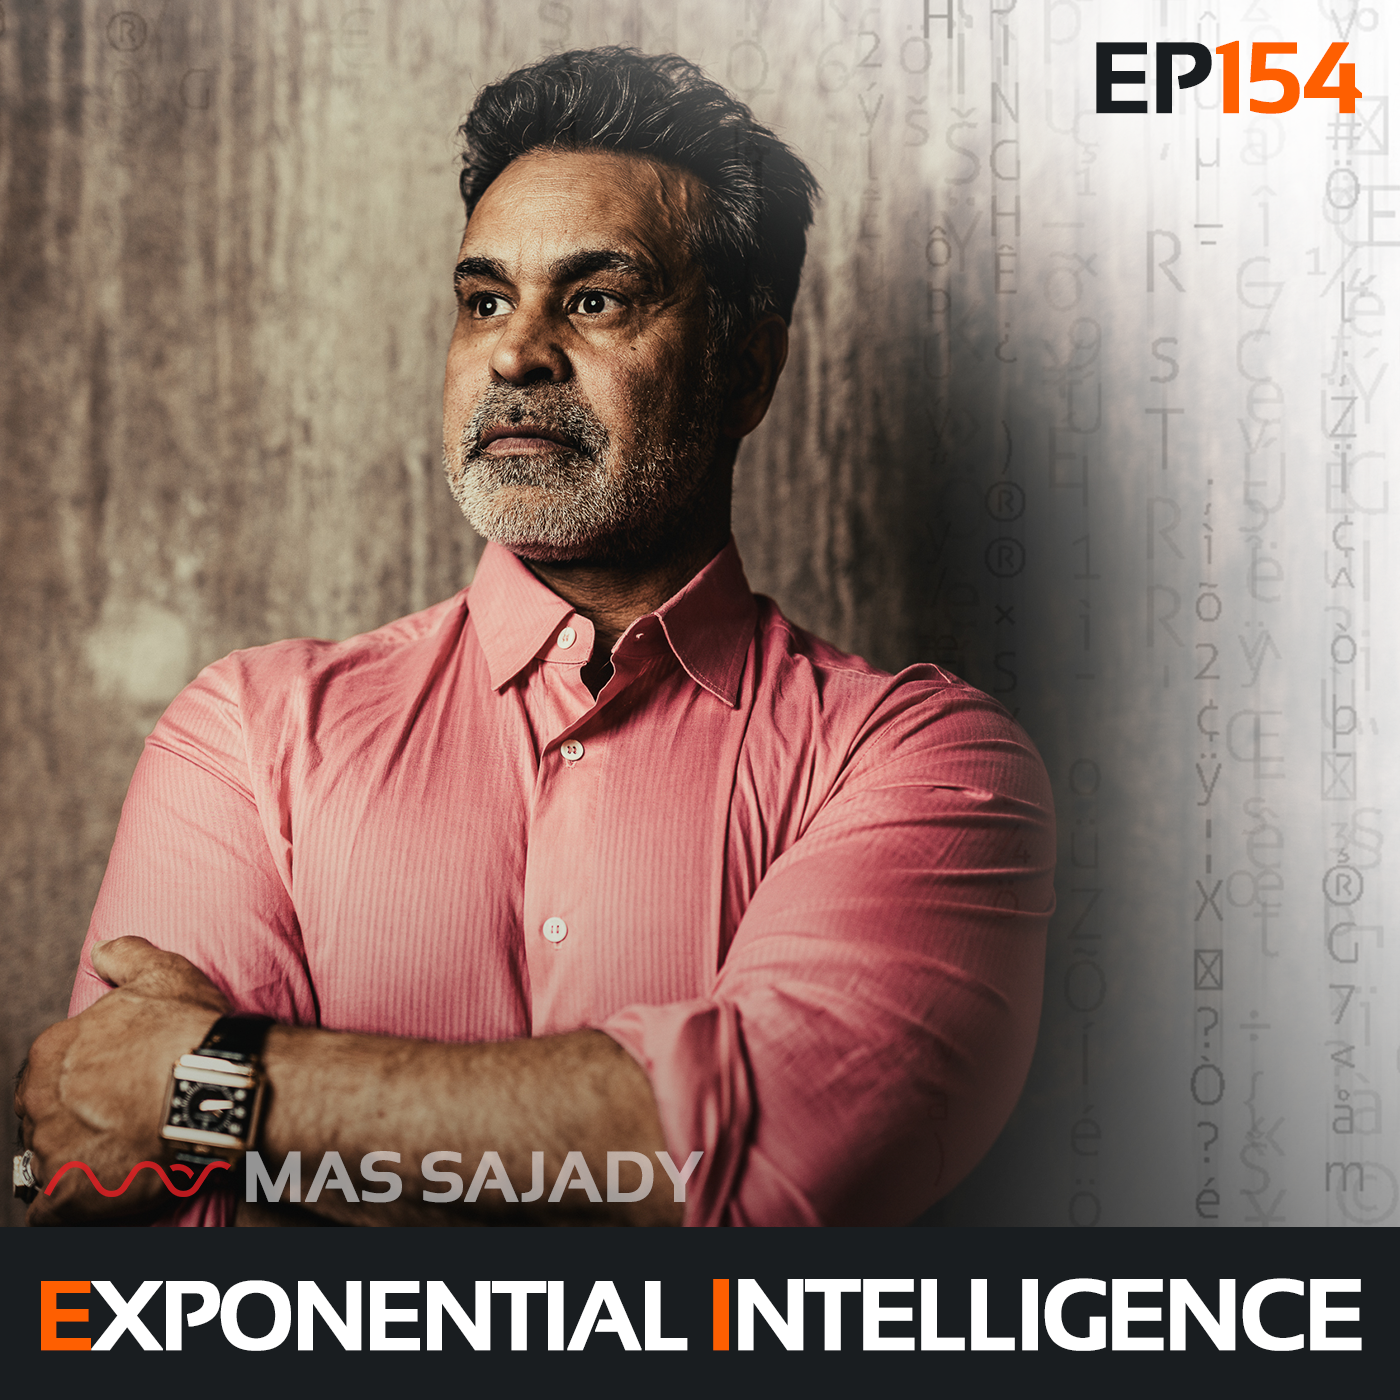 mas-sajady-podcast-exponential-intelligence-154-science-spirituality-part-2.png